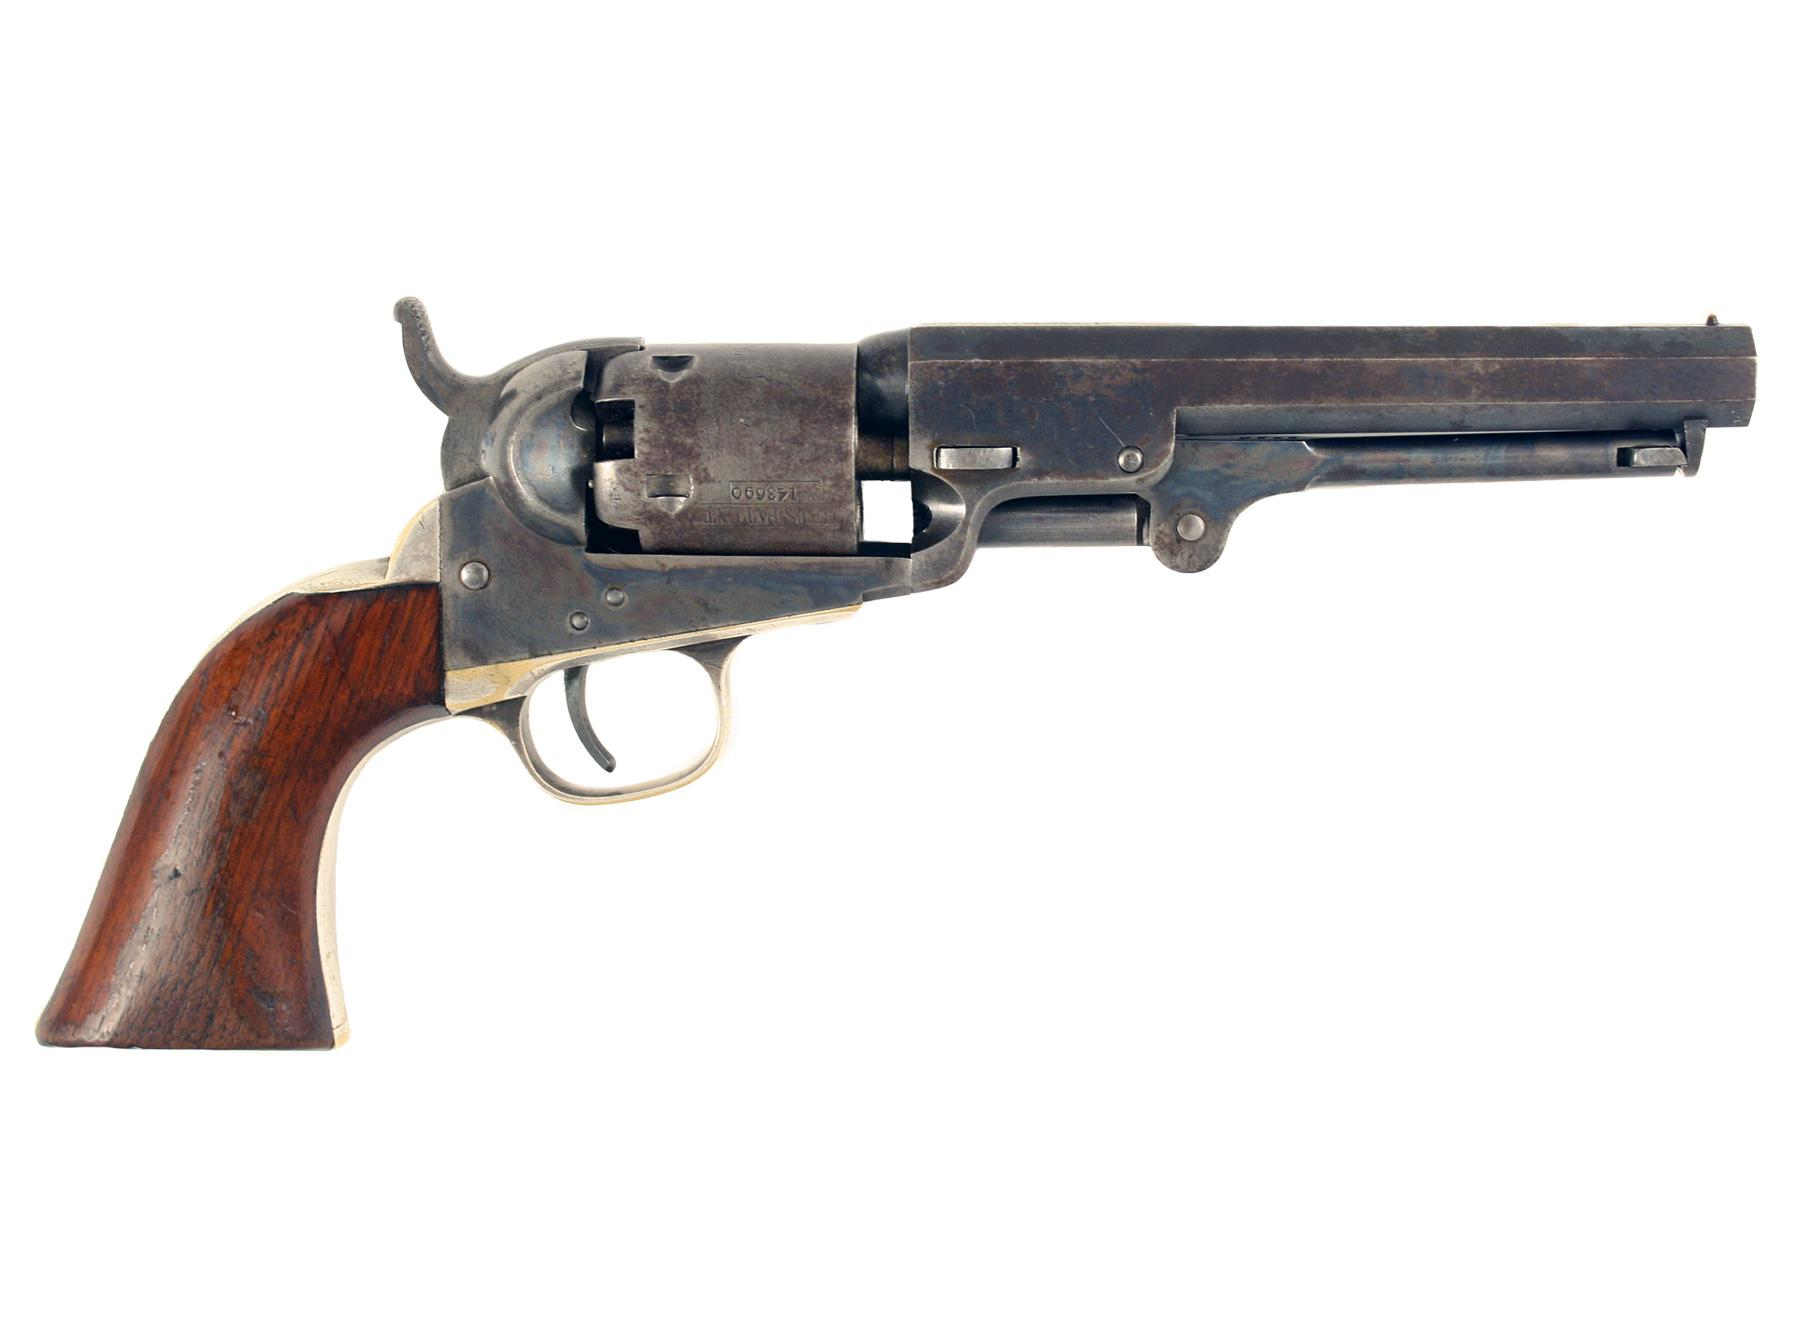 A Colt Pocket Pistol